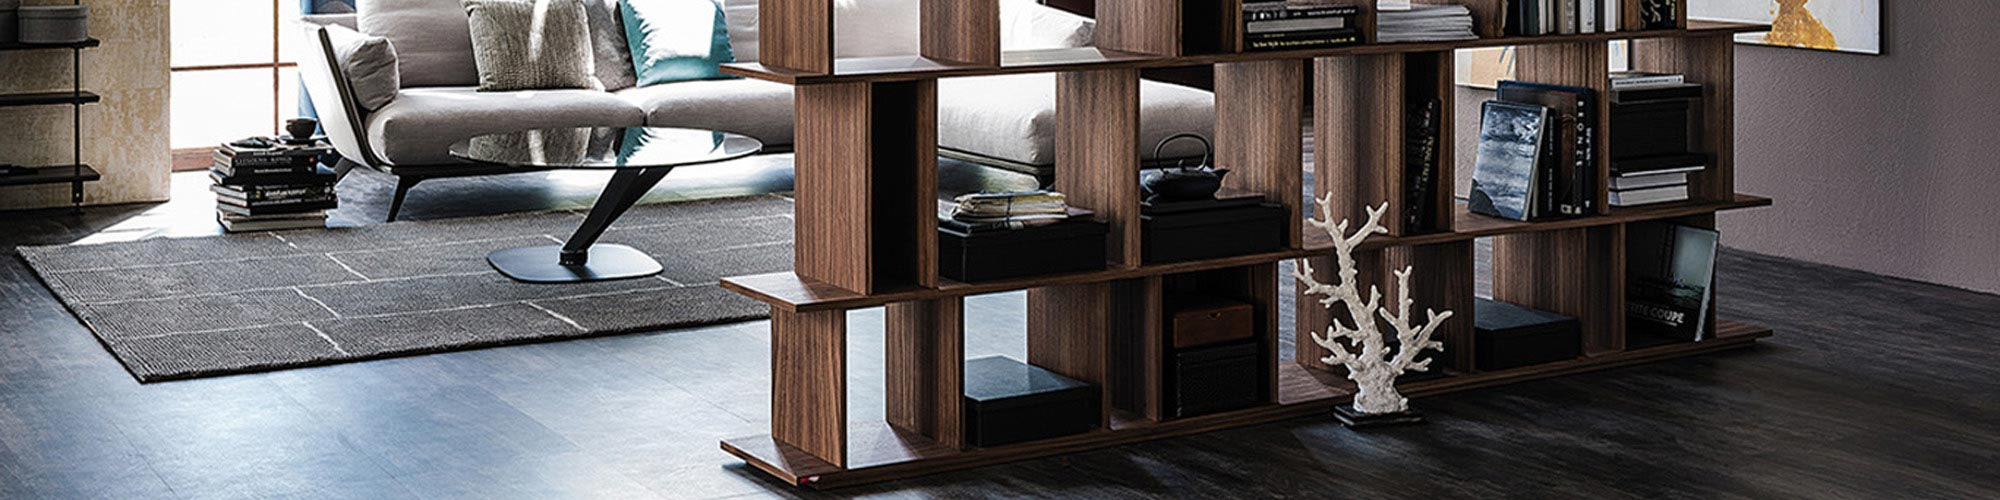 TV, Books and Storage by FCI London